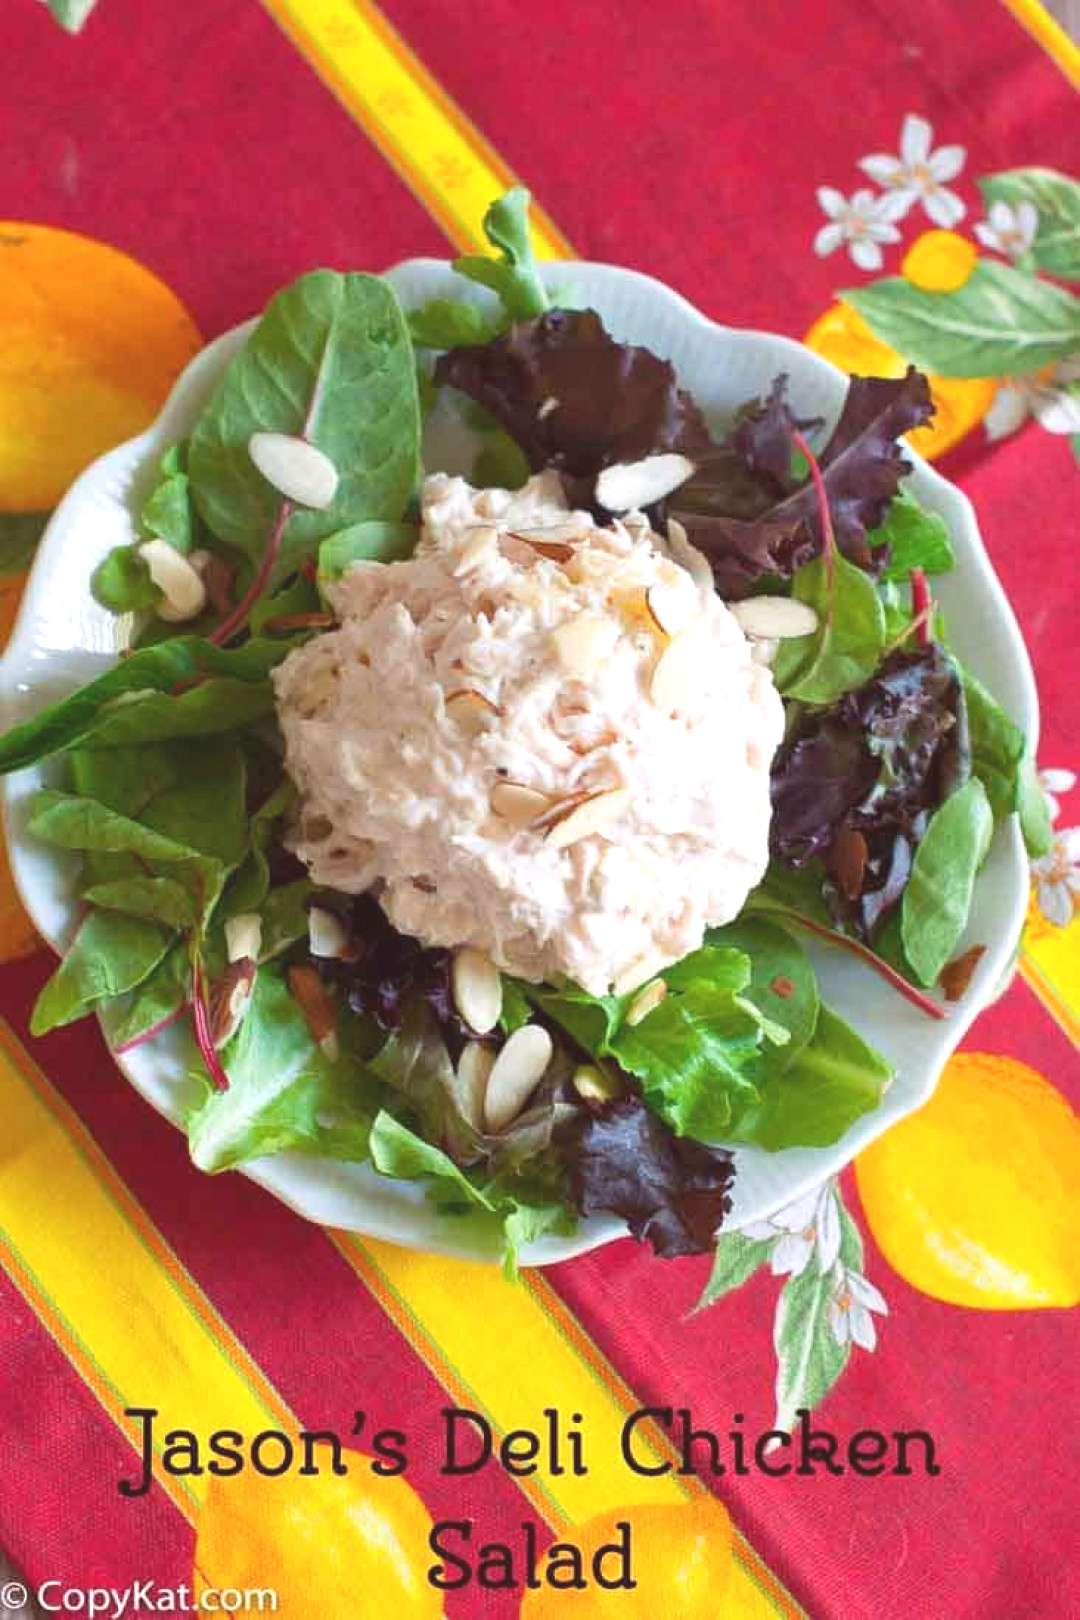 Jason's Deli Chicken Salad has sweet pineapple and crunchy almonds. Make it at home with this easy